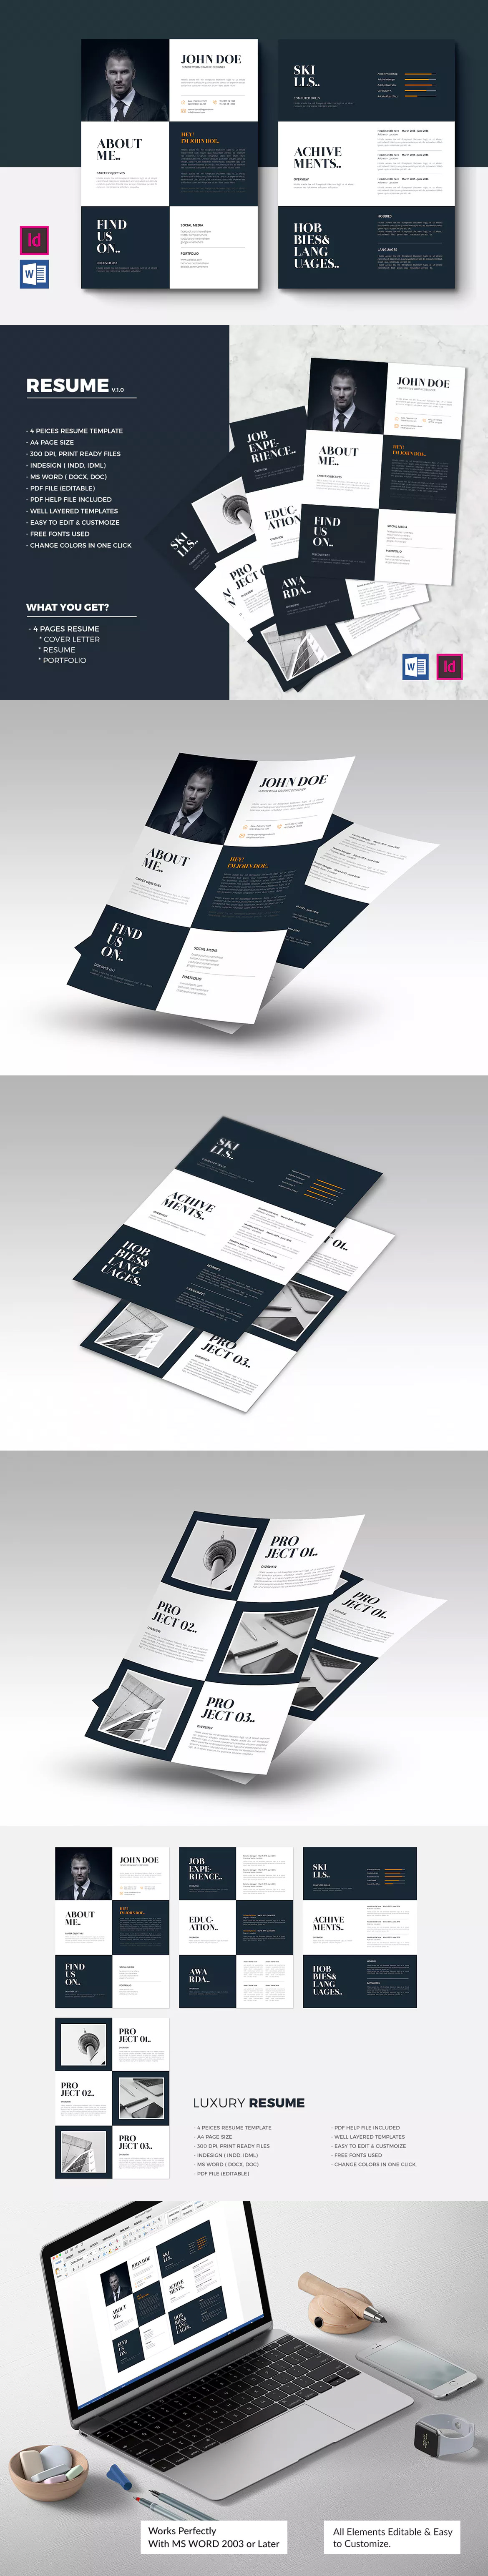 Luxury Resume Template Indd  Resume Templates    Template